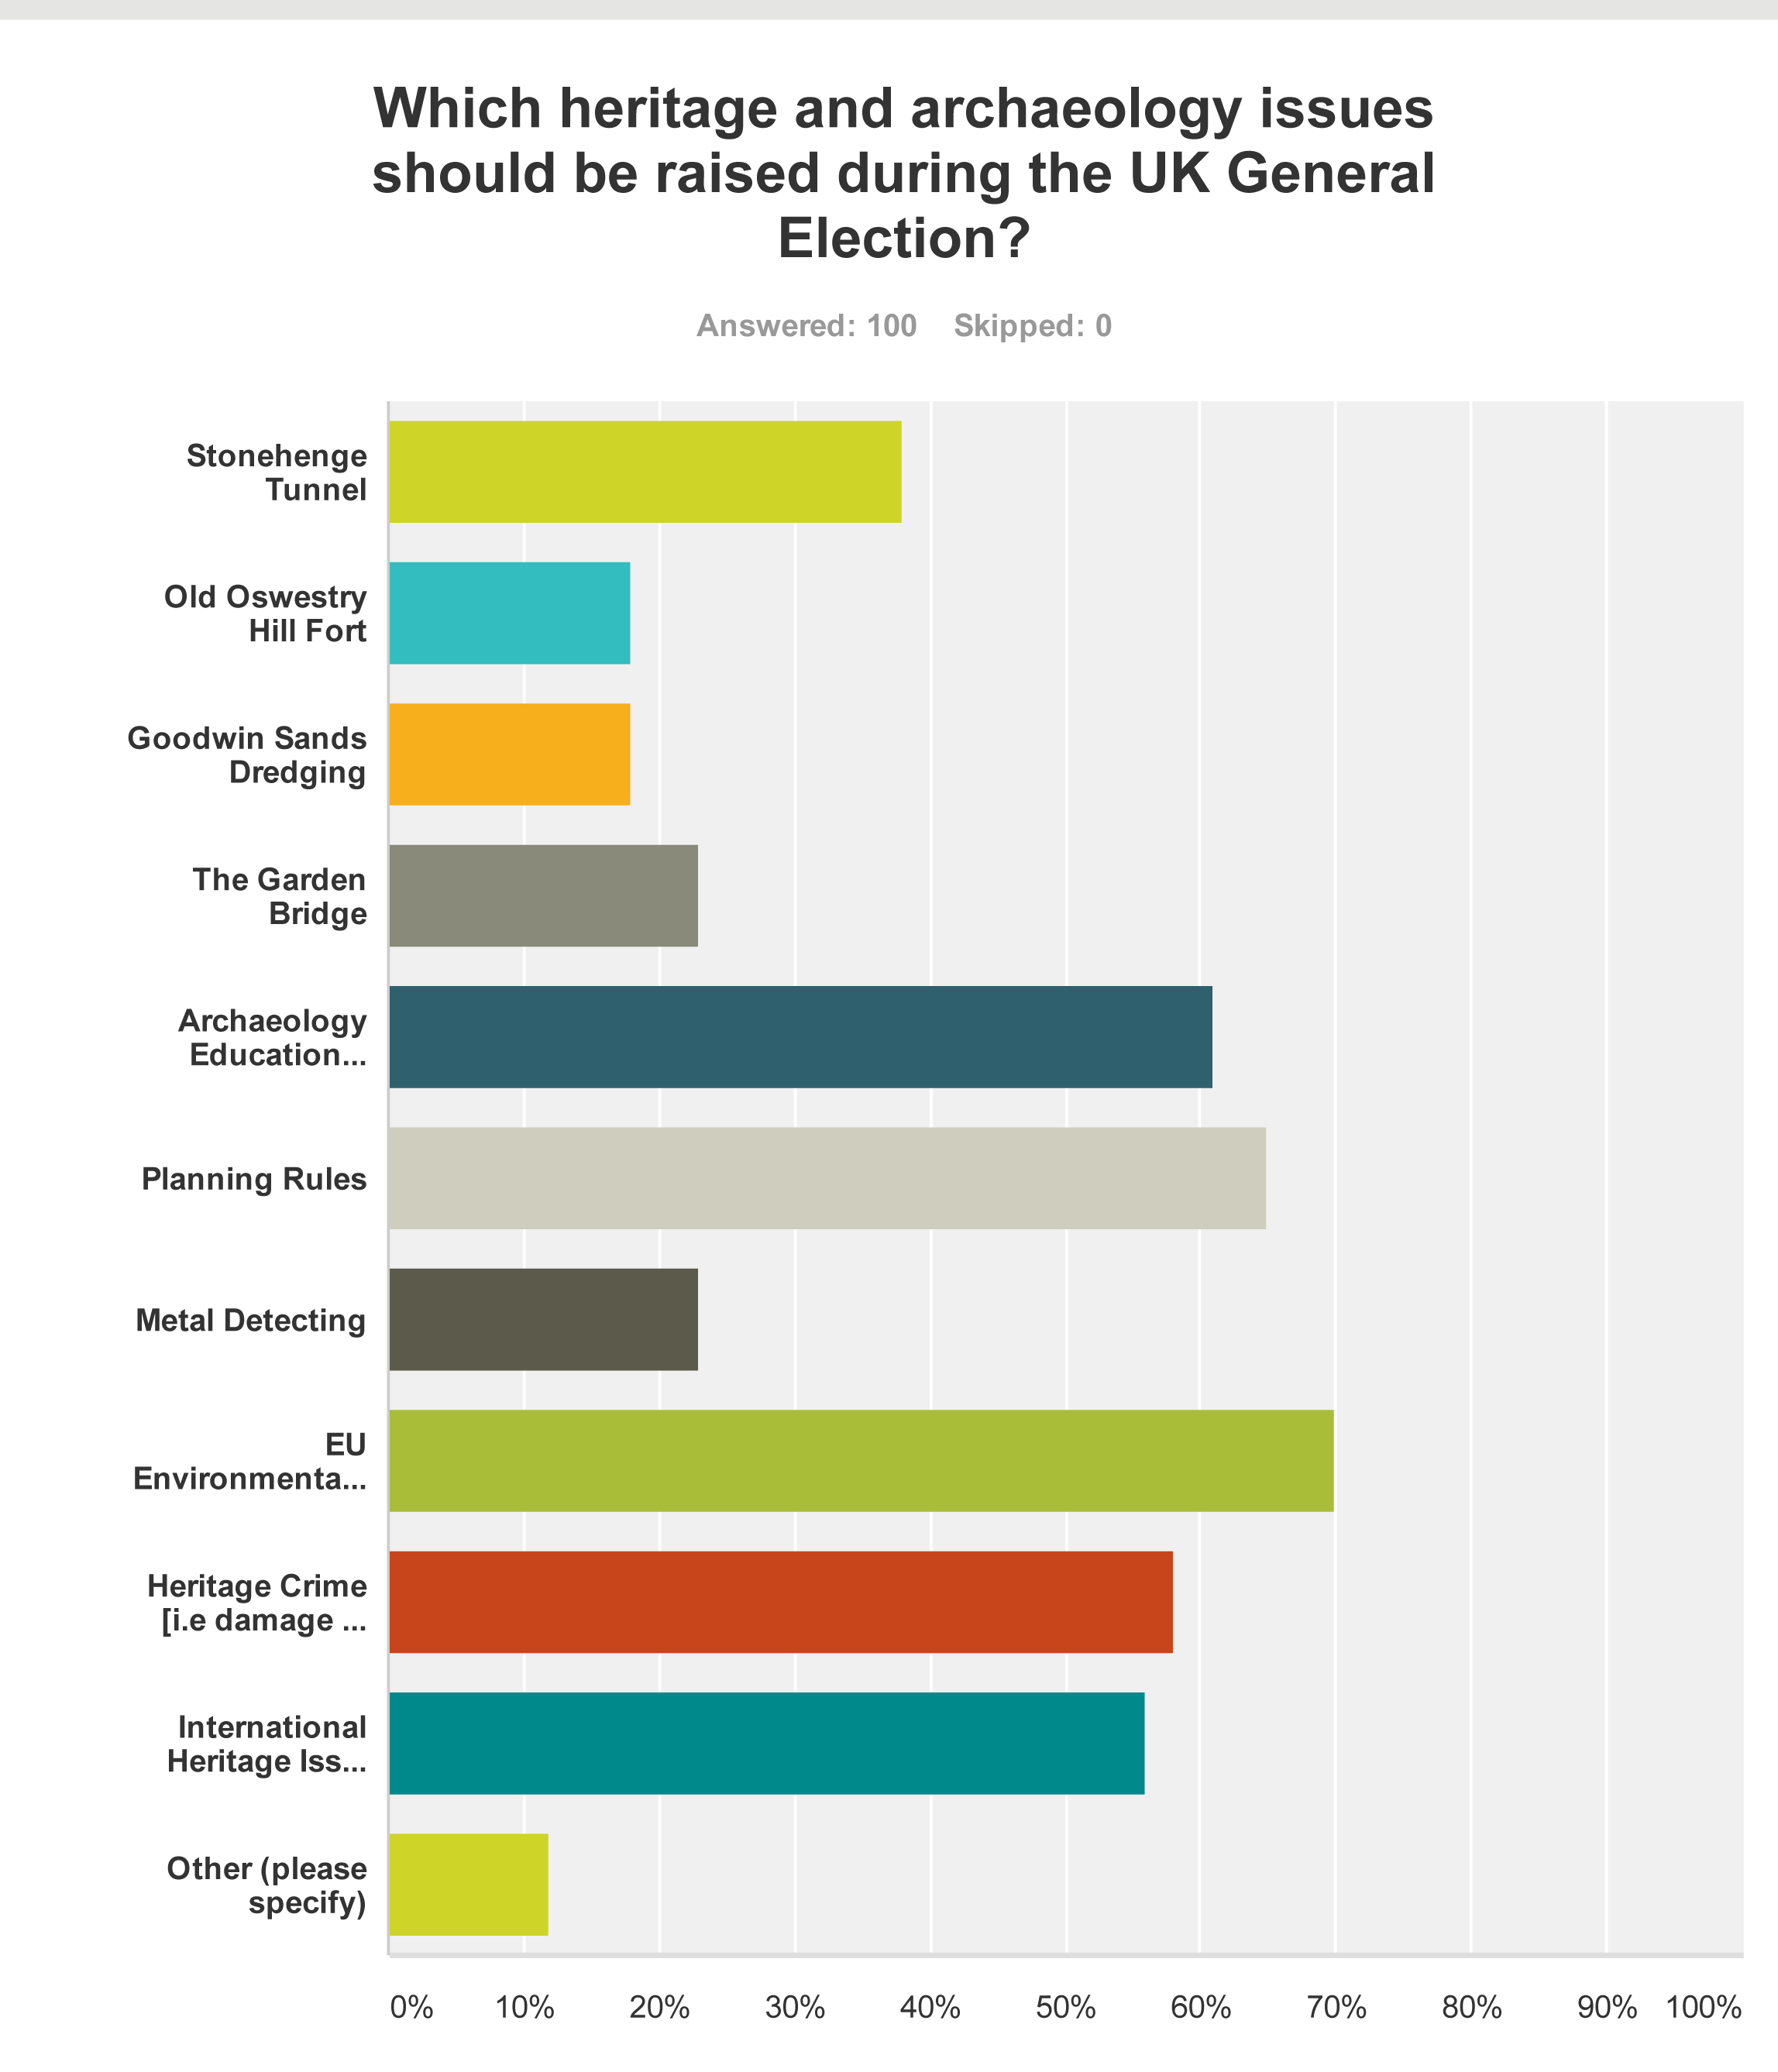 SurveyMonkey Analyze – thePipeLine SNAP POLL_ ARCHAEOLOGY AND HERITAGE IN THE UK GENERAL ELECTION-Q4